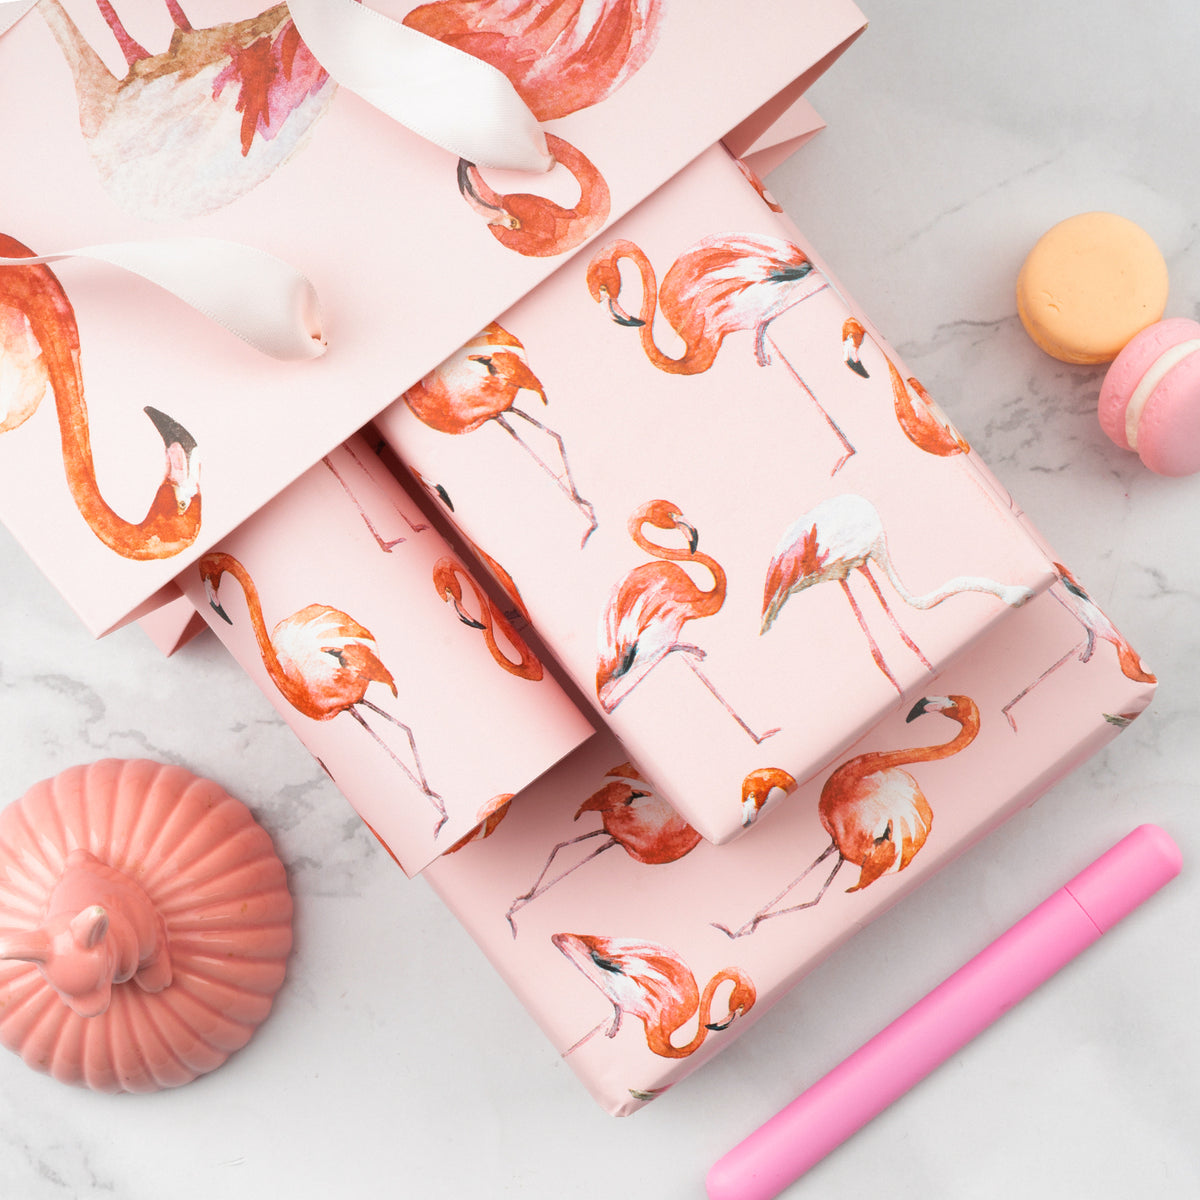 Wrapaholic-Flamingo-Design-with-Cut -Lines-Gift-Wrapping-Paper-Roll-7